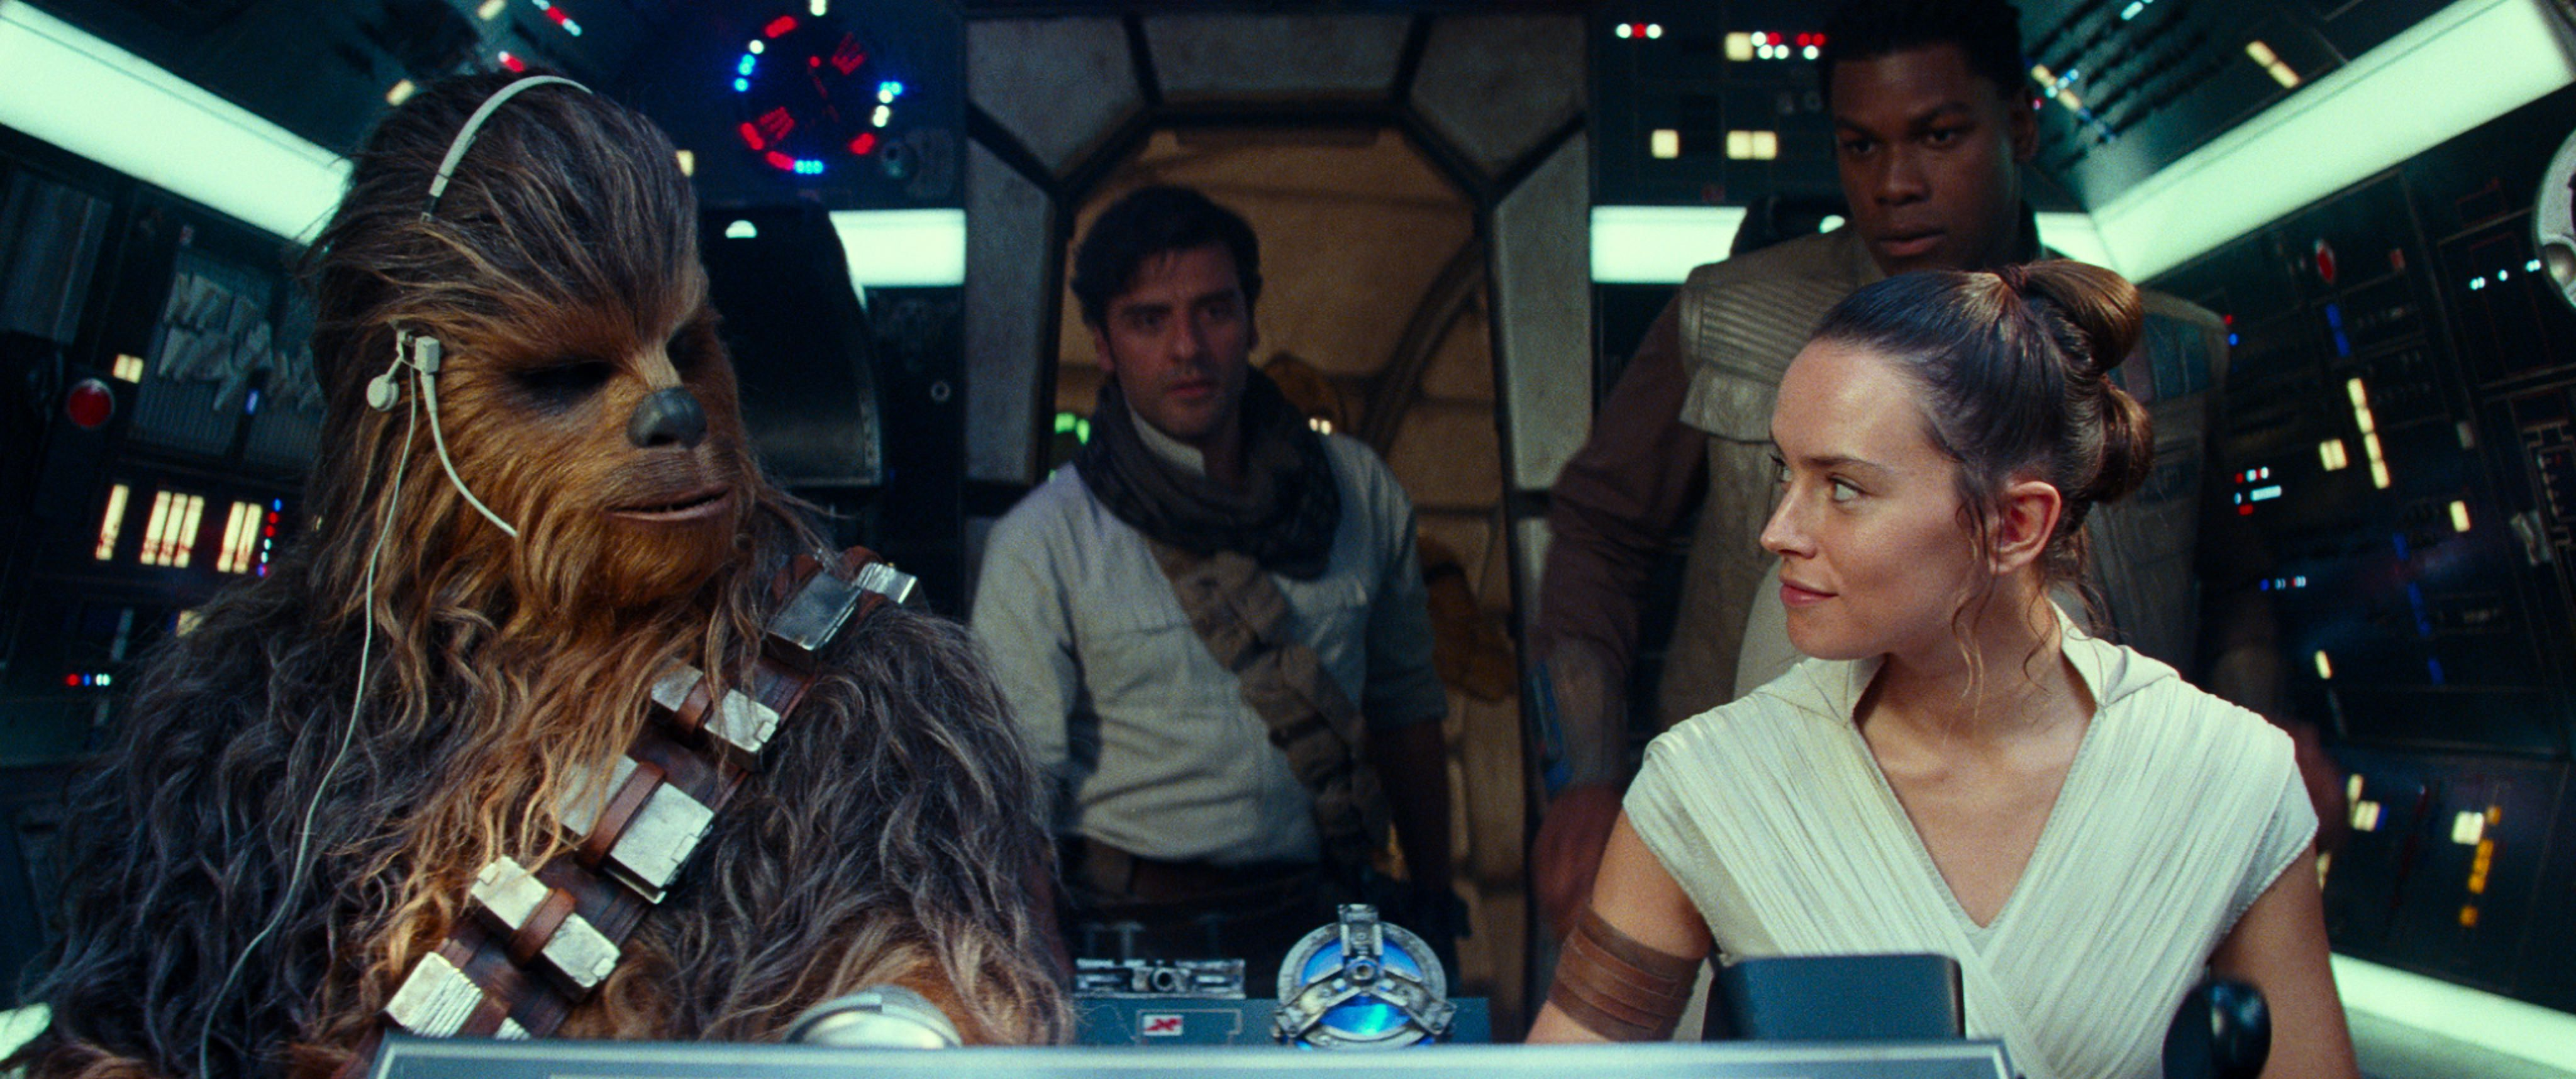 Star Wars Lost Its Mystique And The Rise Of Skywalker Is To Blame Cnet